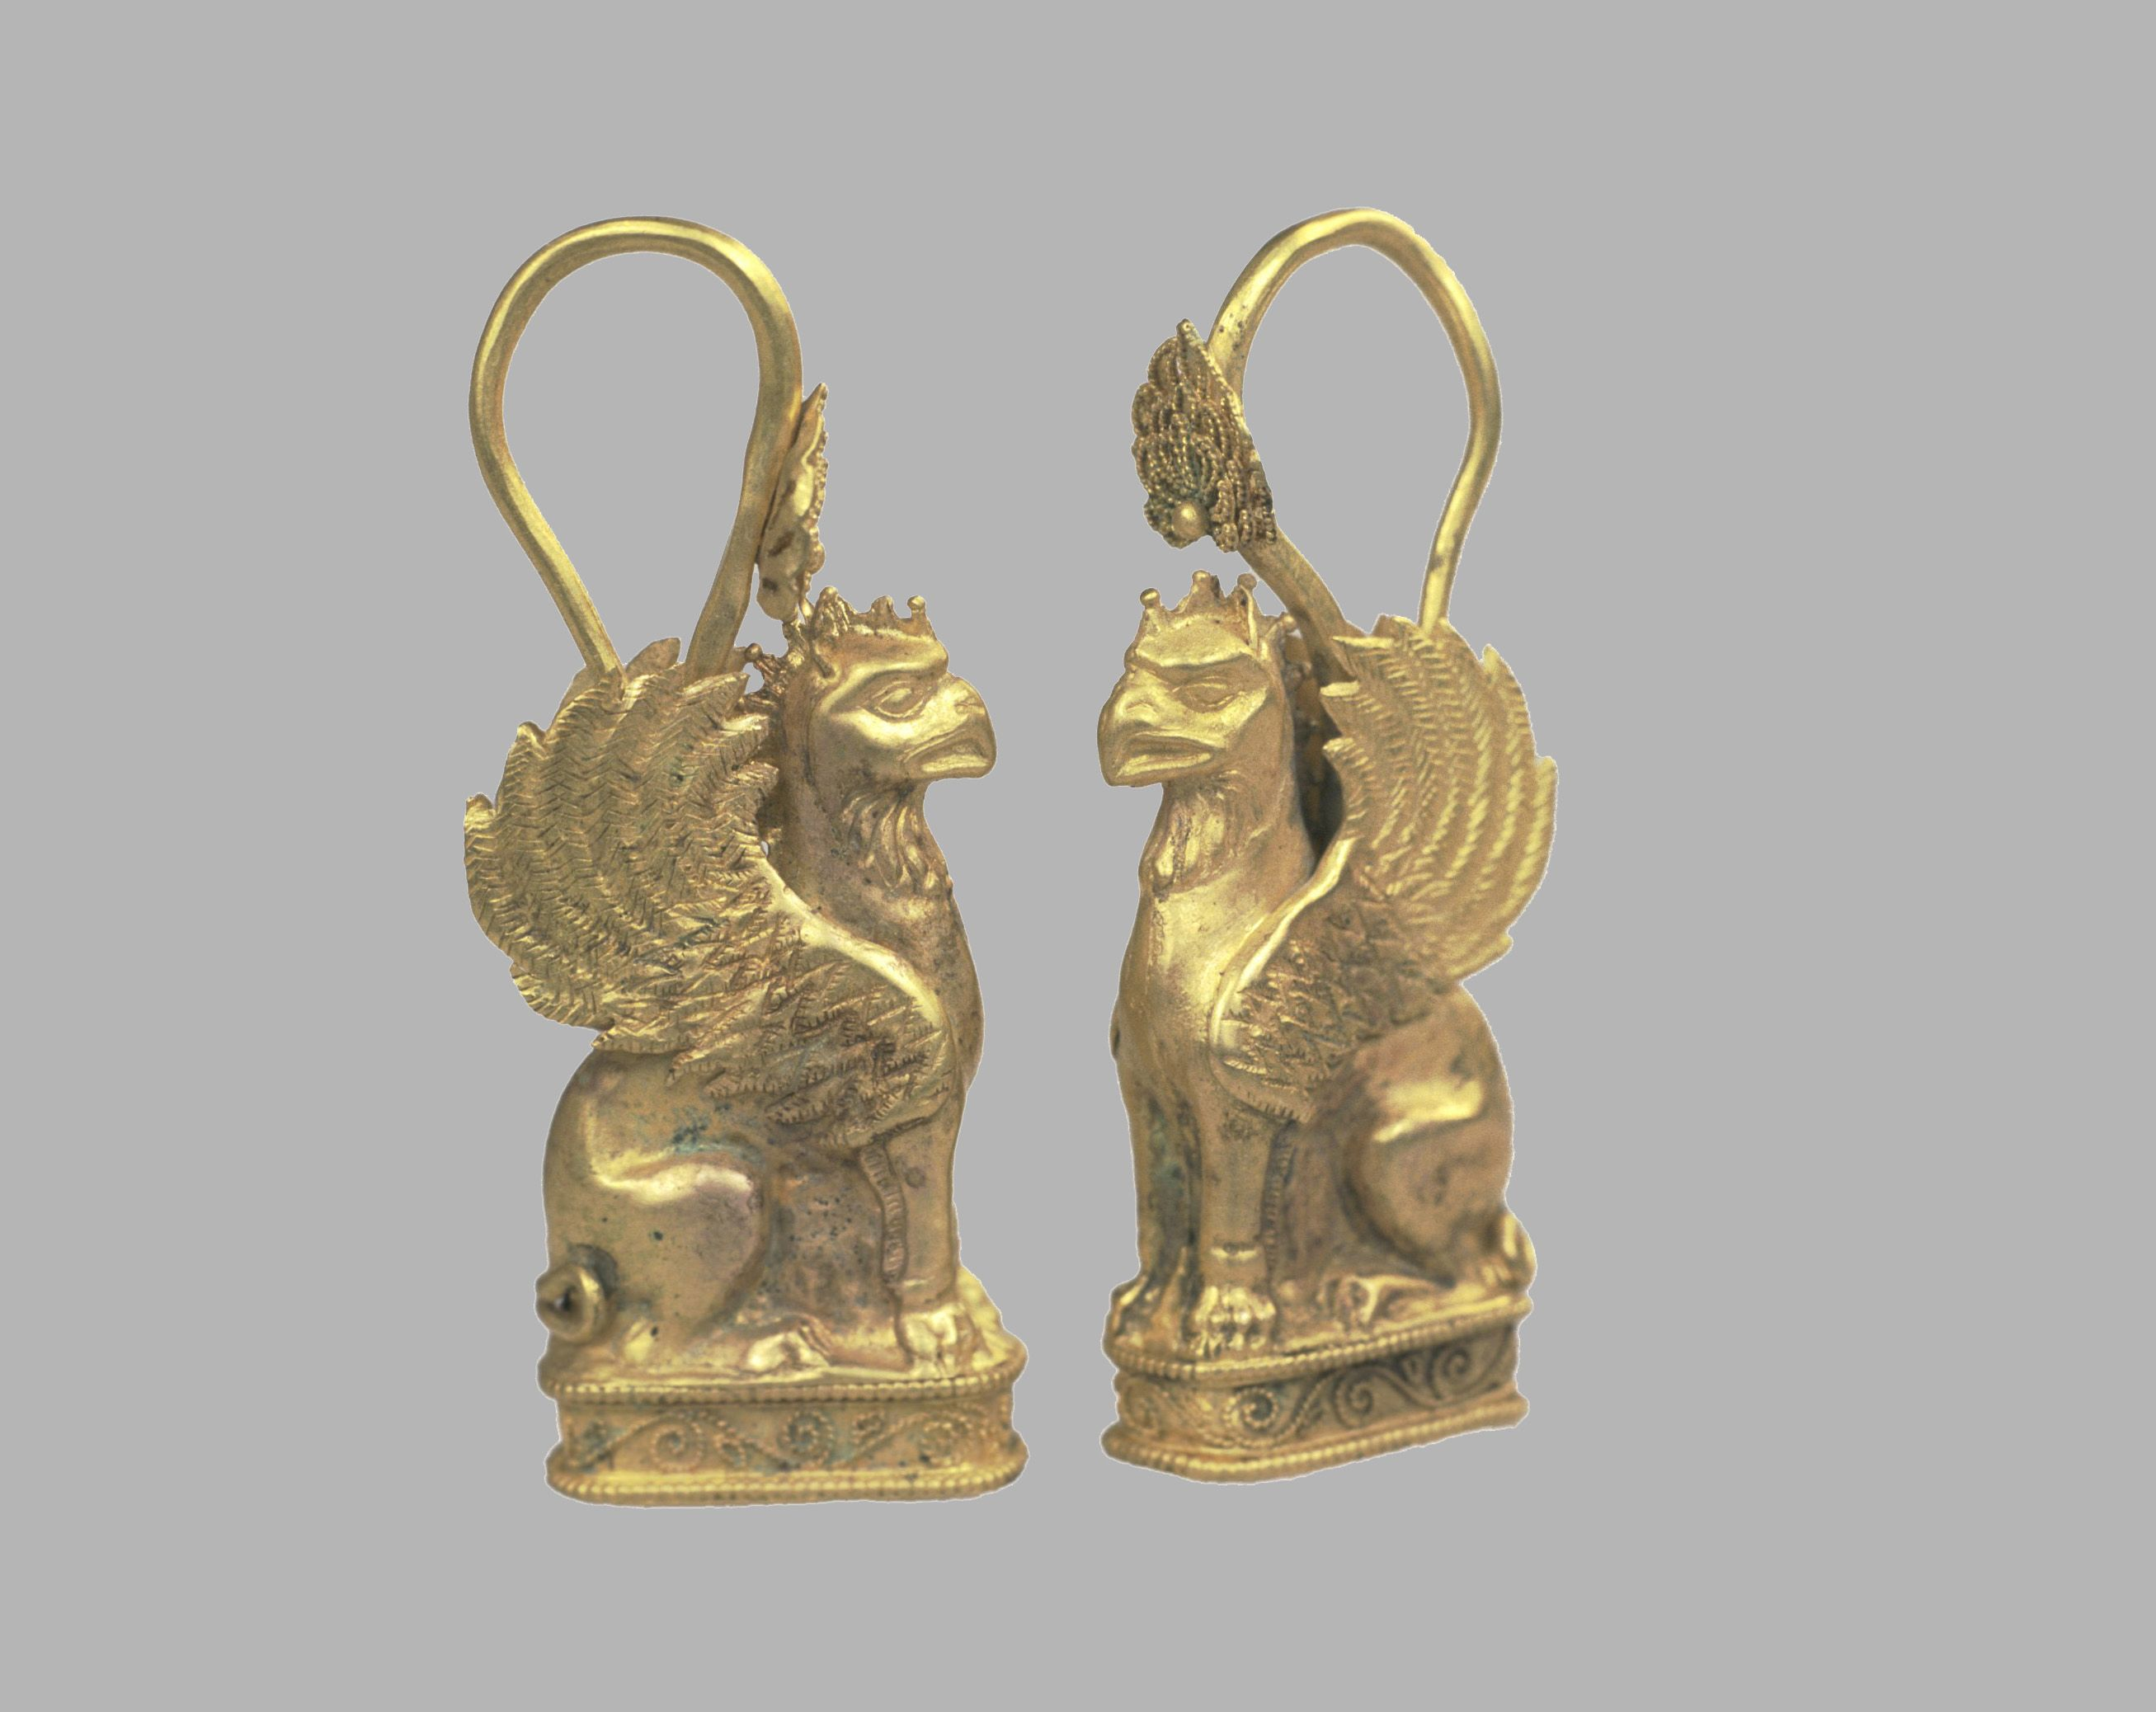 Etruscan gold earrings in the form of griffins | Hammering, soldering, filigree, granulation C.500BC